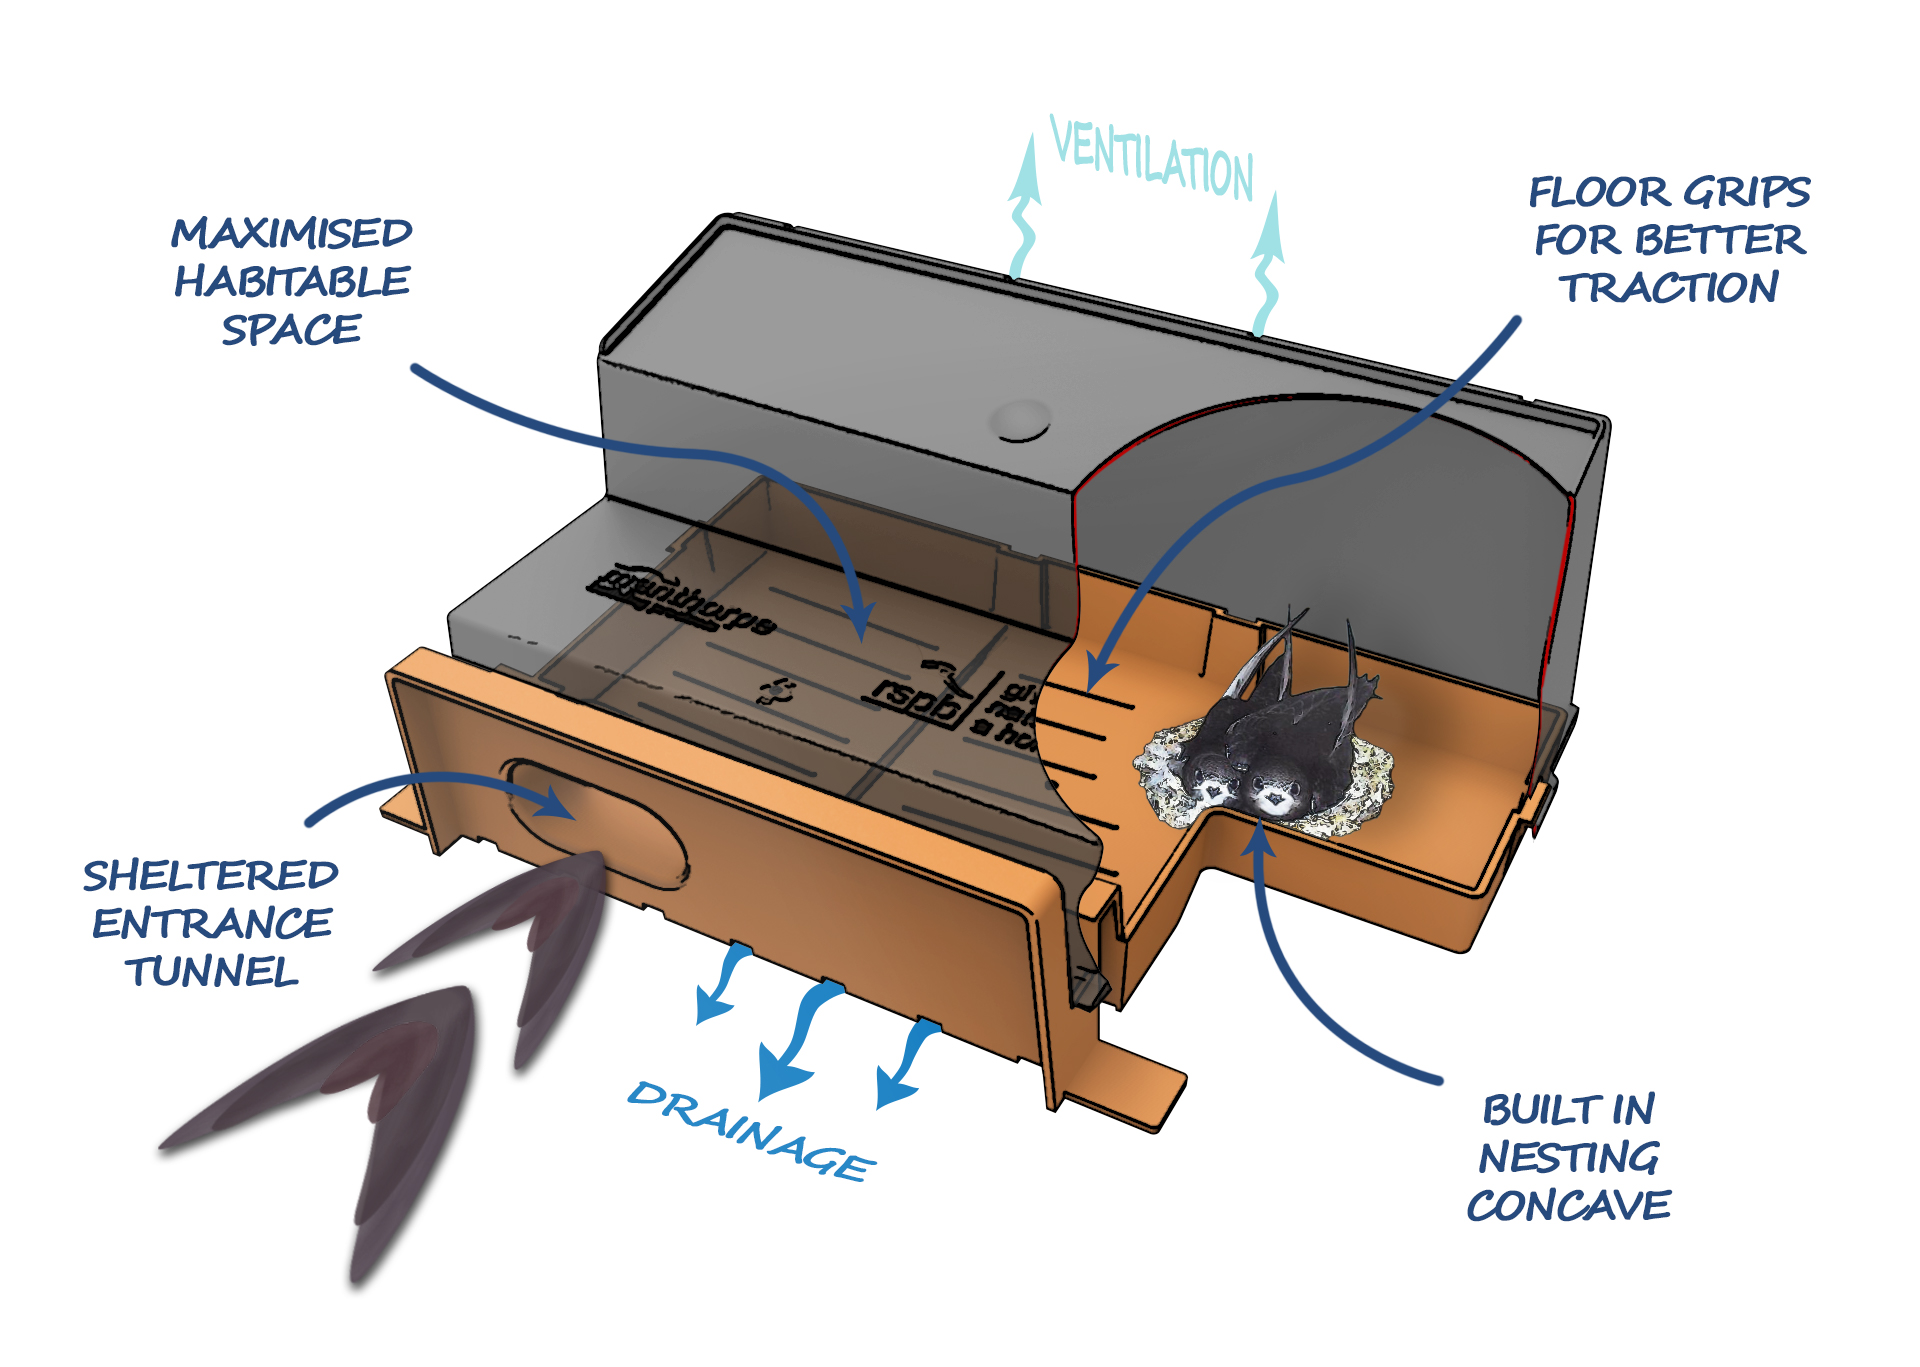 An illustration showing the internal workings of a swift brick which features a sheltered tunnel entrance, floor grips for traction and a built in nesting concave.